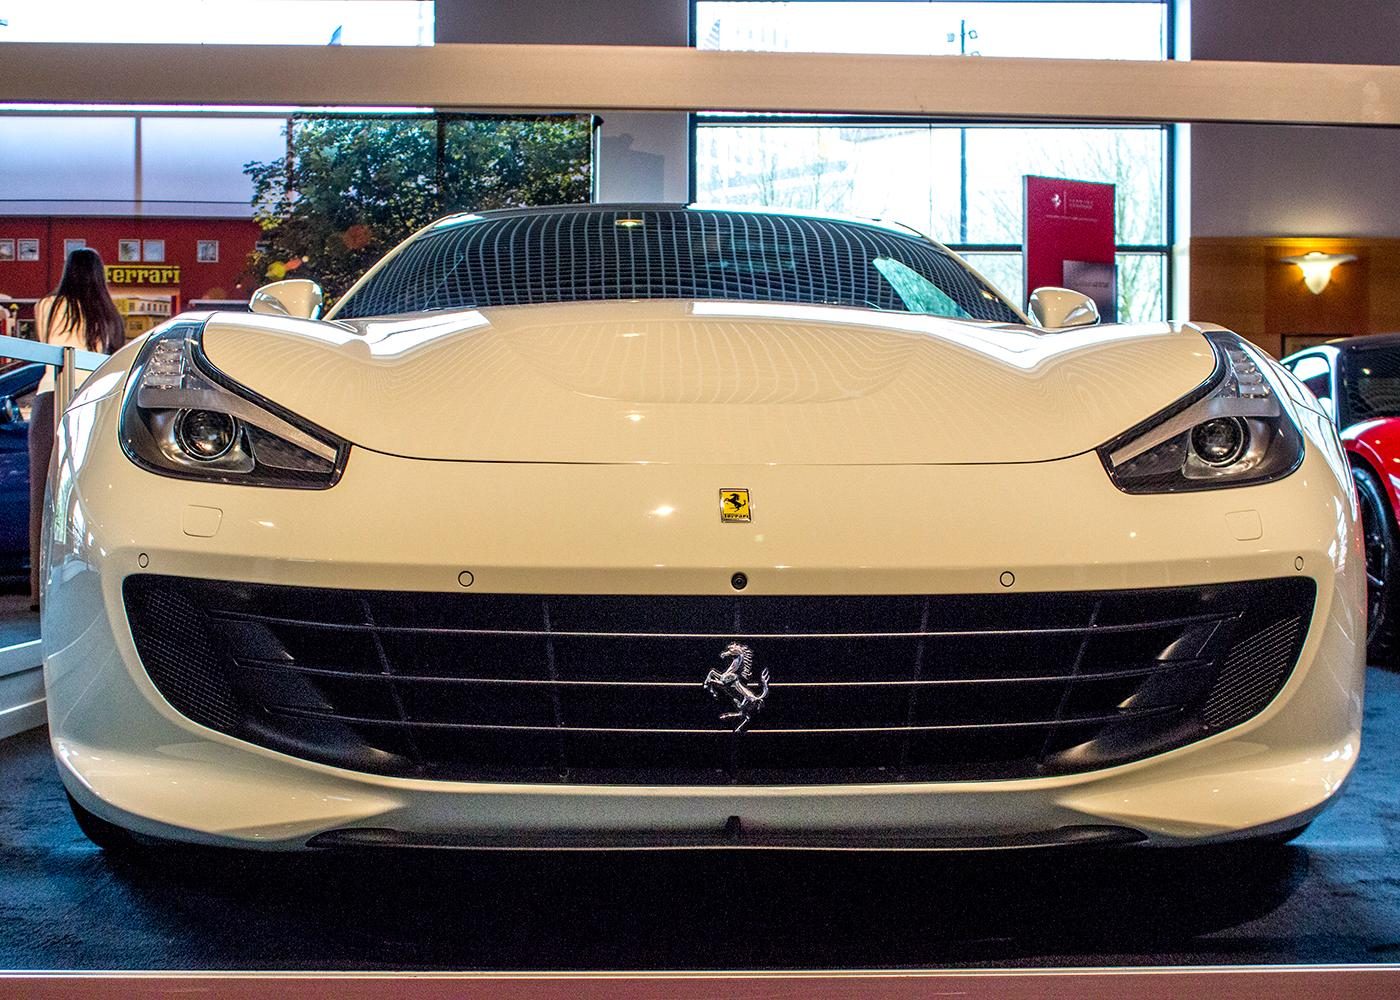 Ferrari GTC4Lusso -The Portland International Auto Show began at the Oregon Convention Center on Jan. 25, 2018. The event drew prospective buyers and others who enjoyed looking at and comparing vehicles. Photo by Amanda Butt